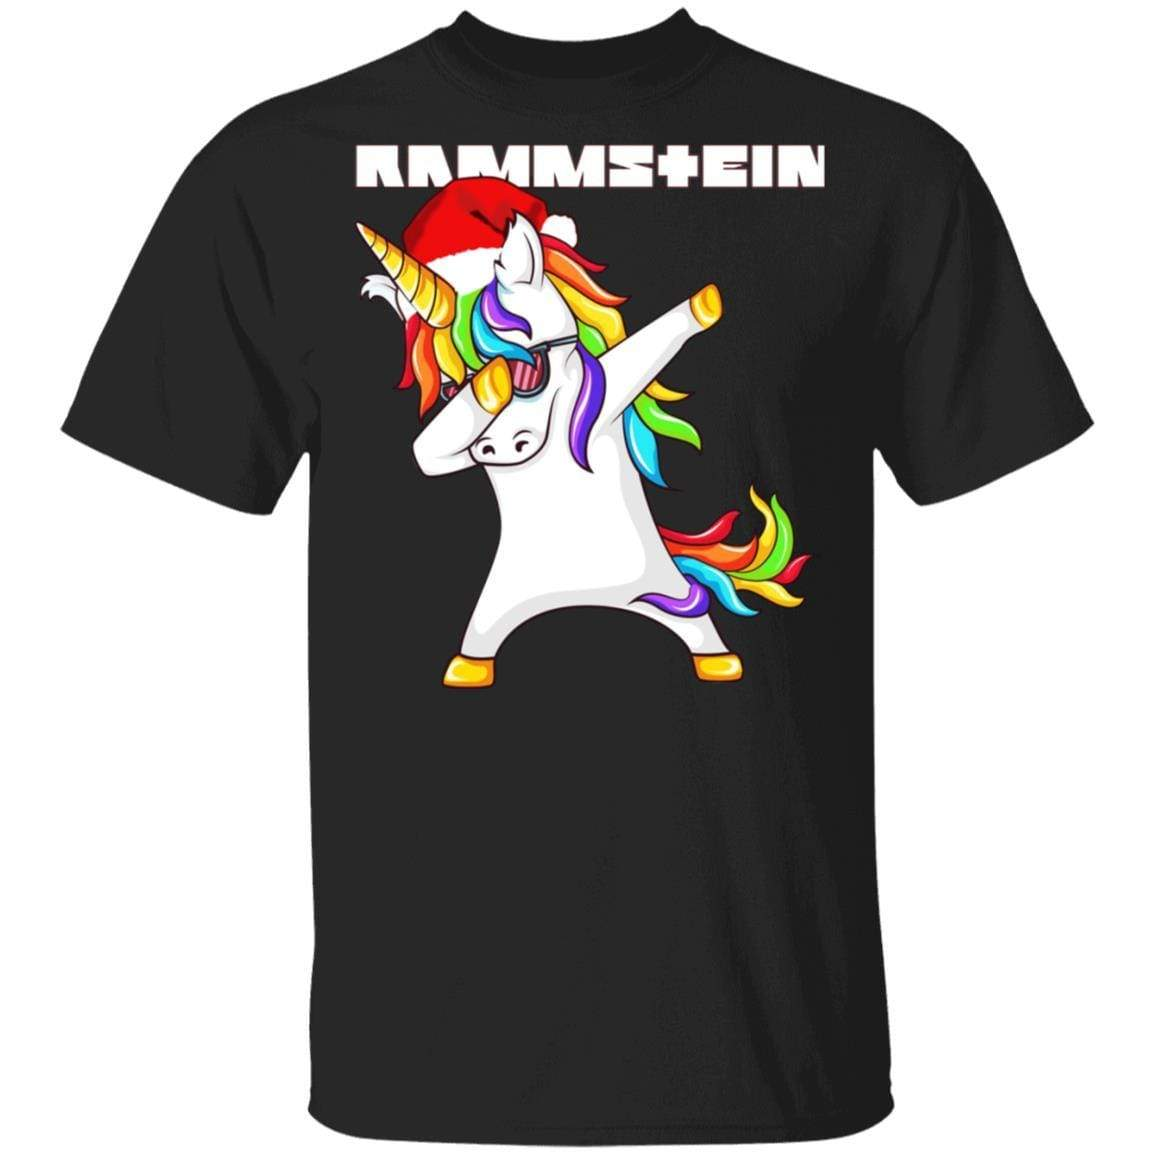 Rammstein Dabbing Unicorn Version T-Shirts, Hoodies 1049-9953-88254696-48144 - Tee Ript